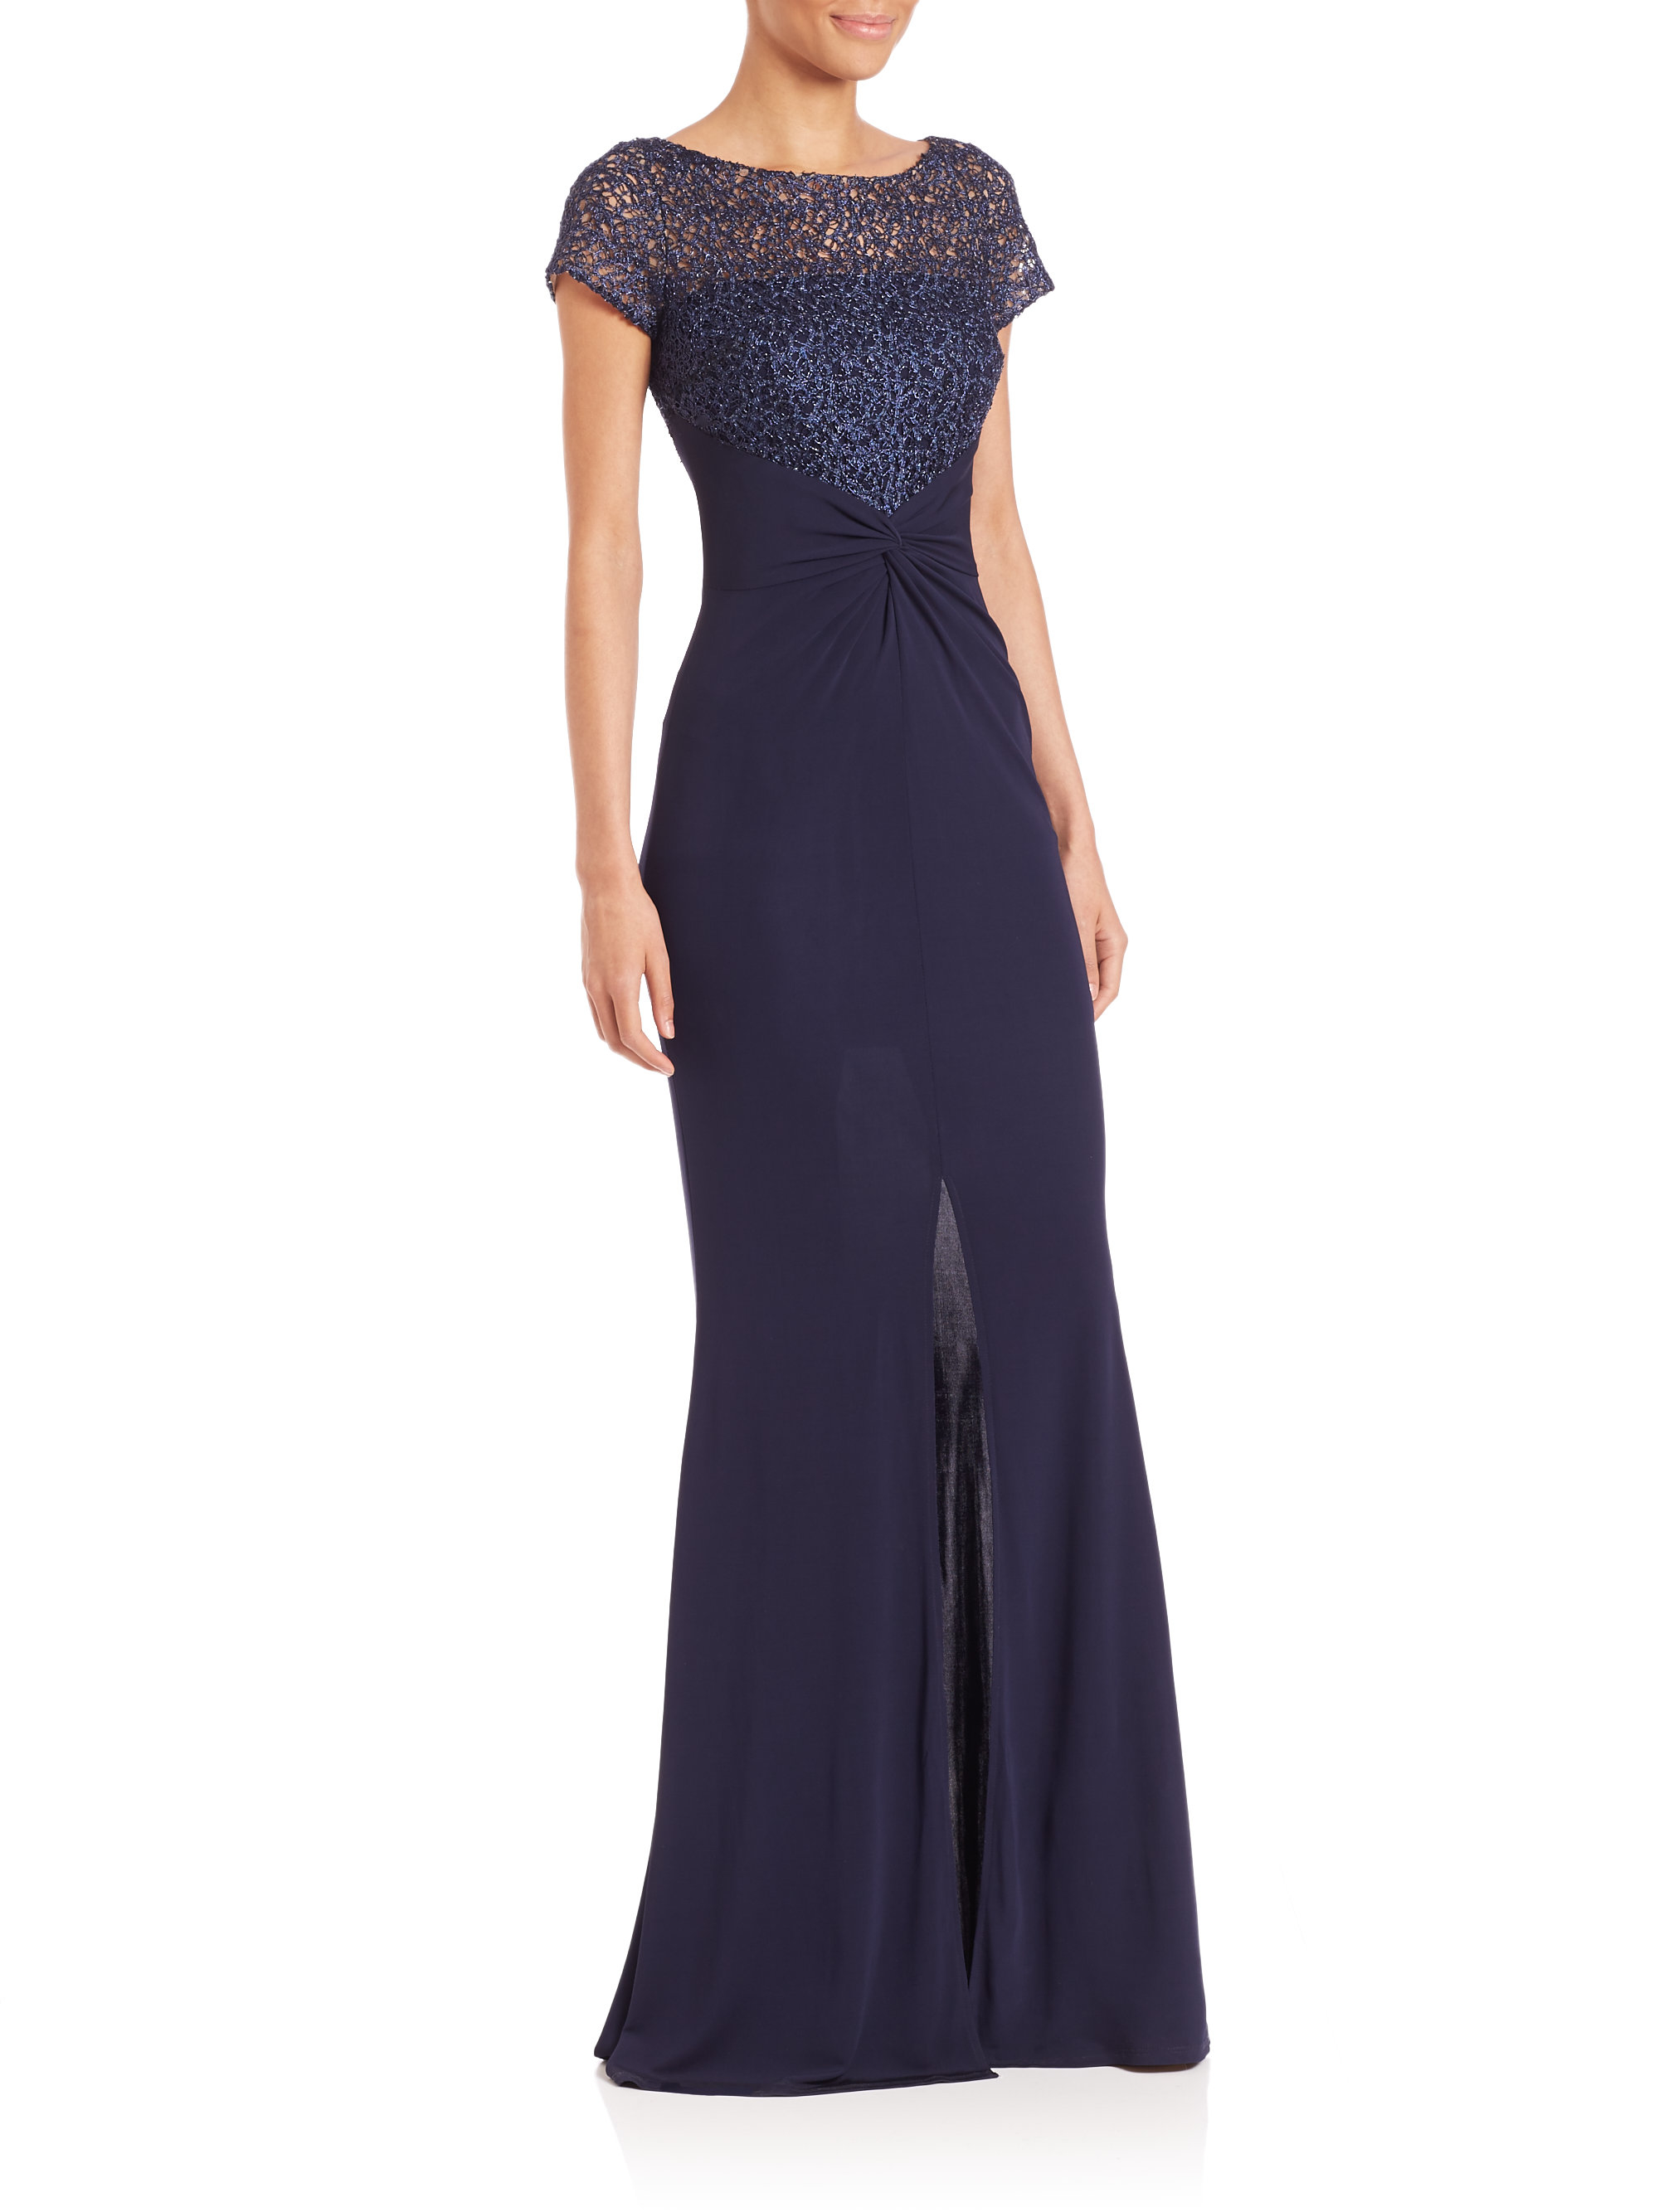 Lyst - David Meister Lace-bodice Jersey Gown in Blue